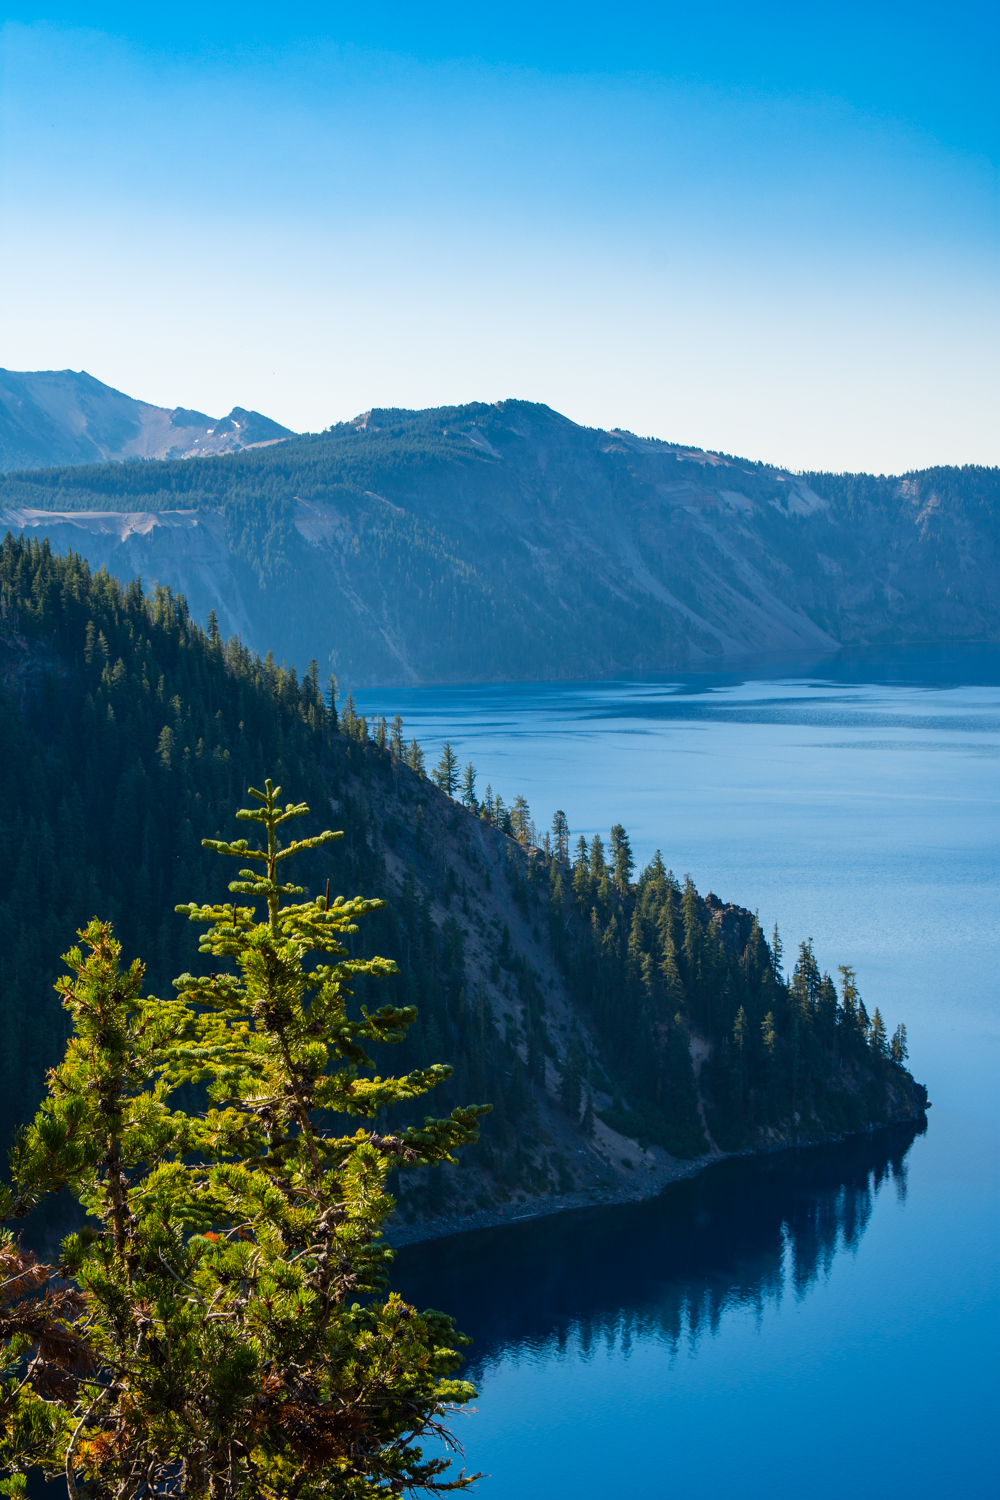 Crater Lake, the deepest lake in the US